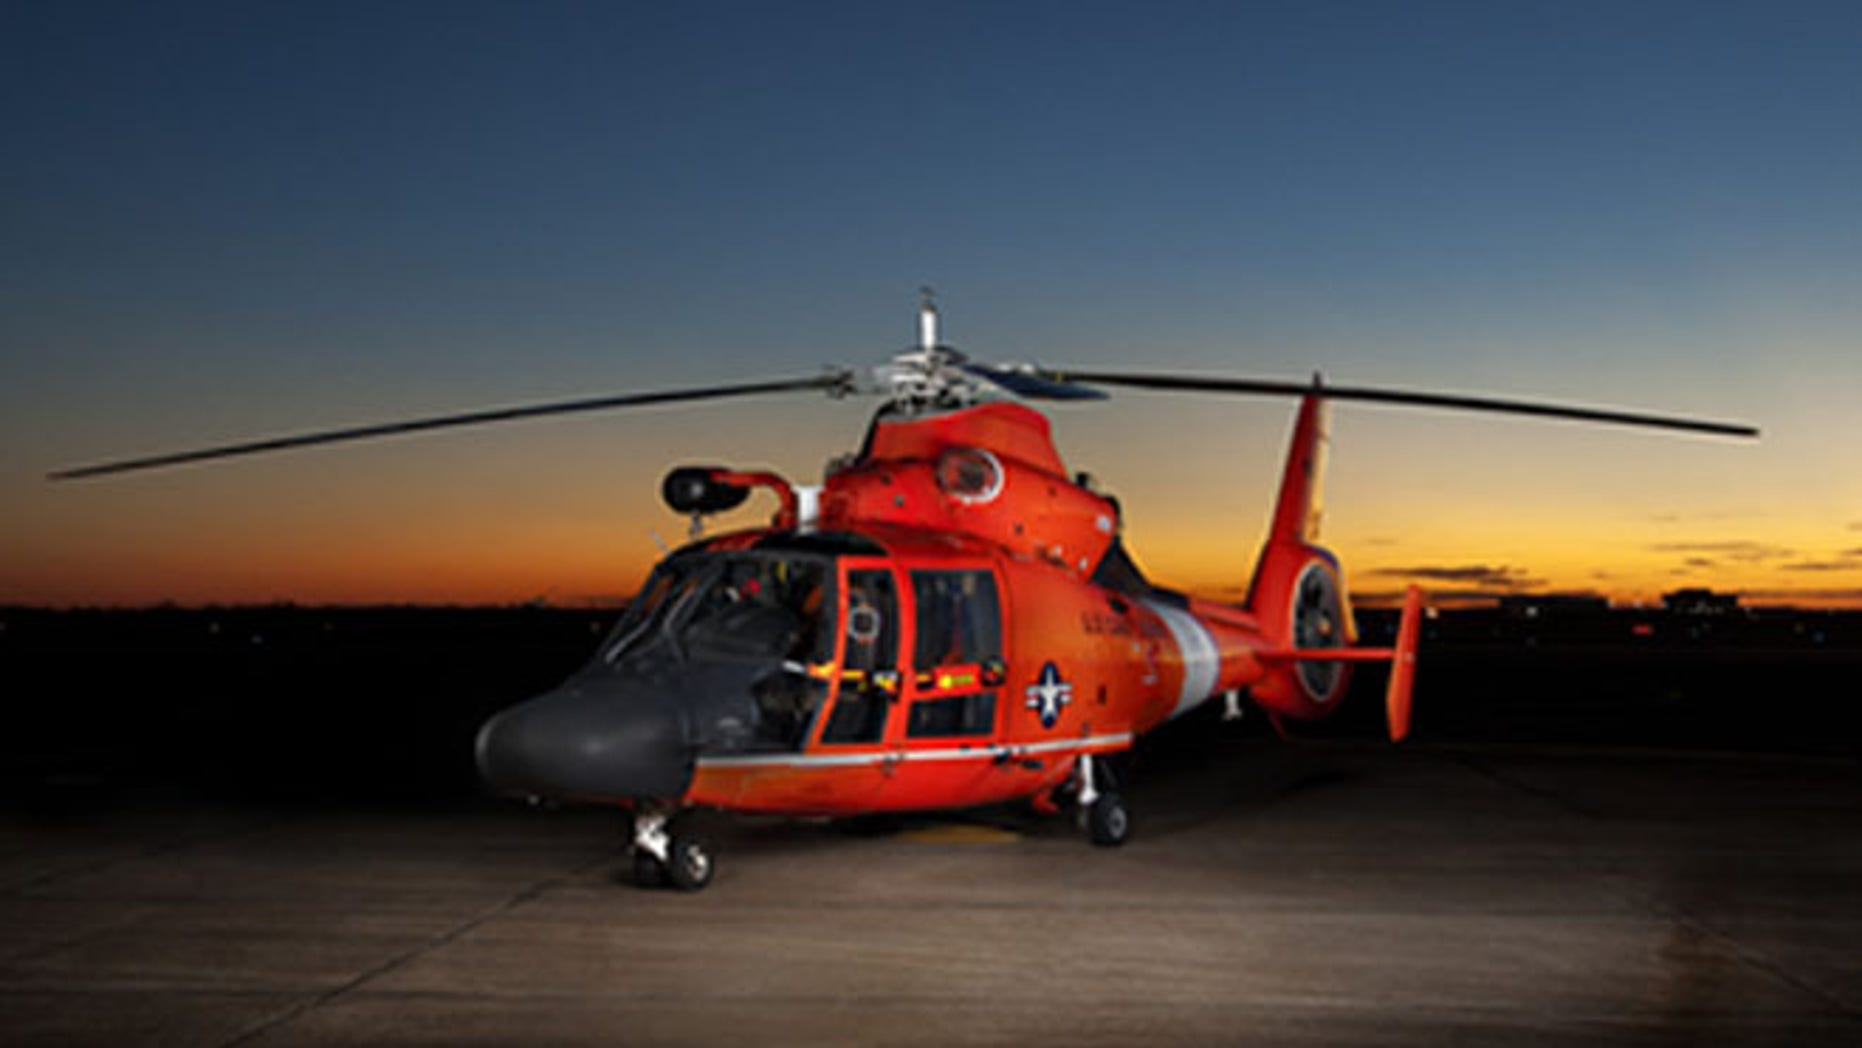 A staff member from Rep. Duncan Hunter's office learned that a laser system on the Coast Guard's MH-65 helicopter is not in use due to FDA regulations.